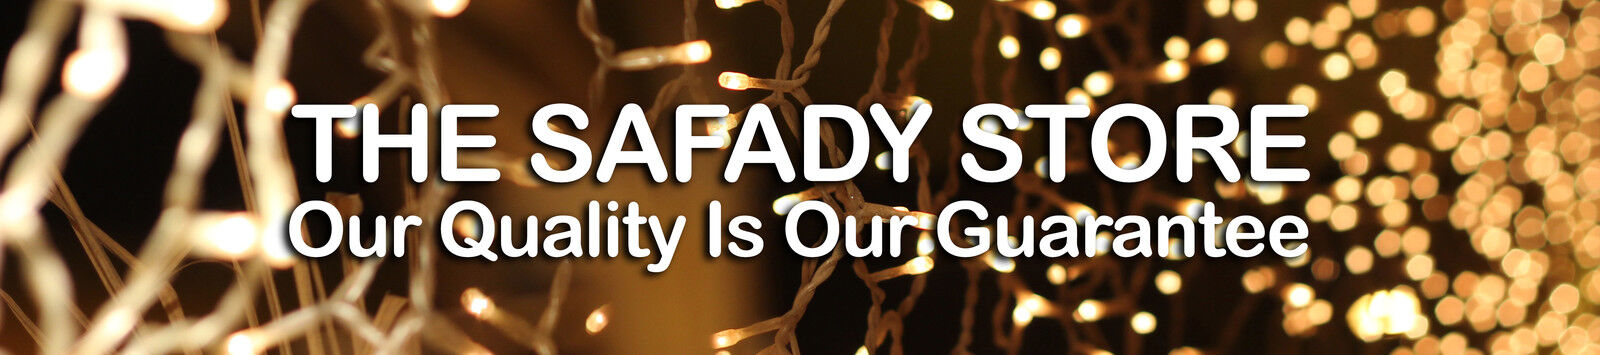 THE SAFADY STORE